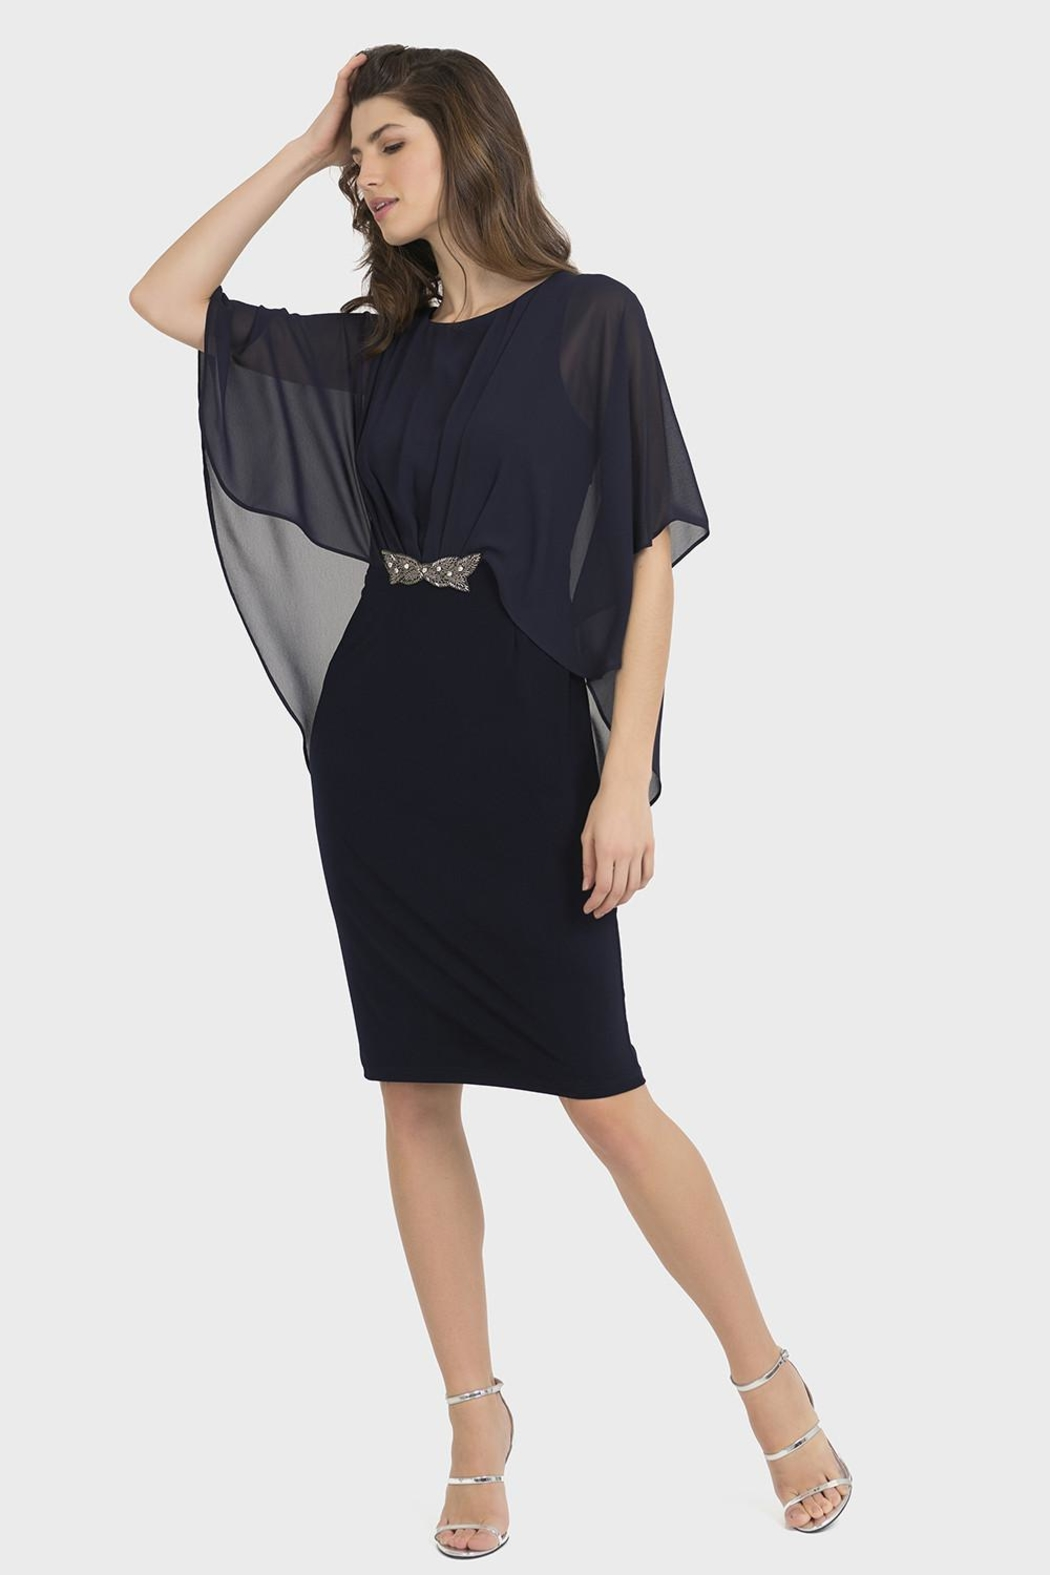 Joseph Ribkoff Clarissa Midnight-Blue Dress - Main Image